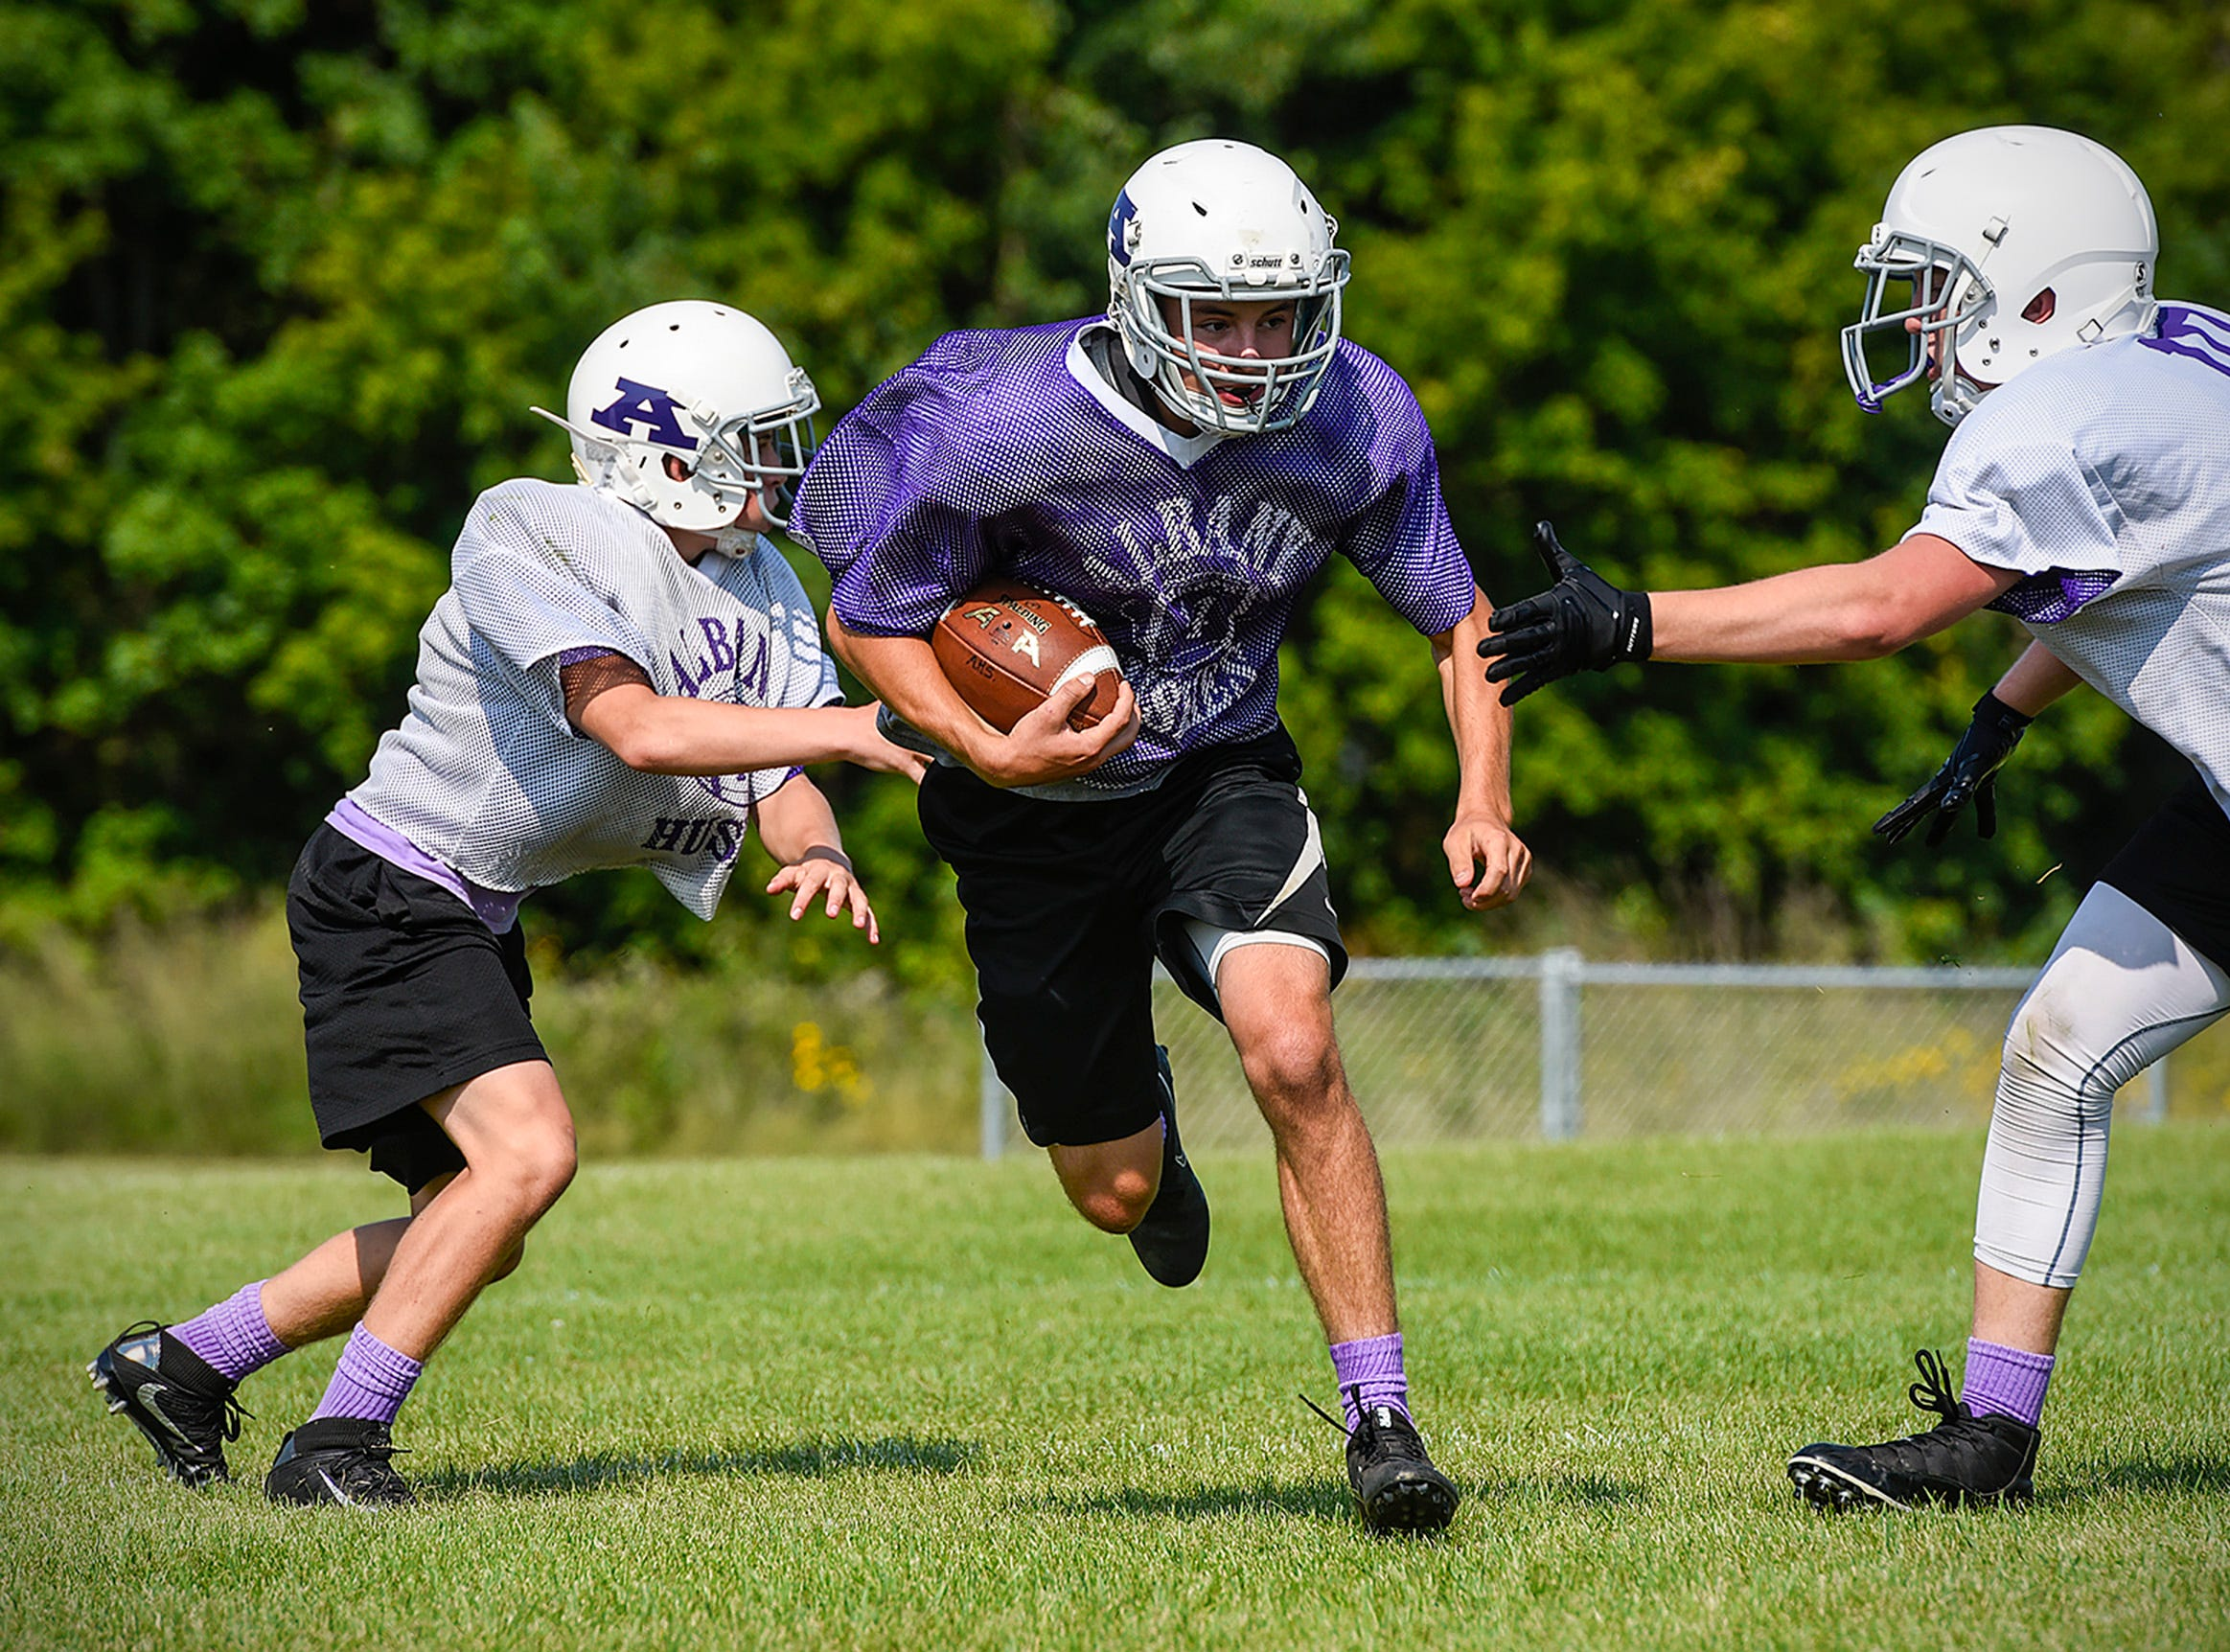 Albany back Dylan Wenning carries the ball during paractice Wednesday, Aug. 15, at the Albany High School.